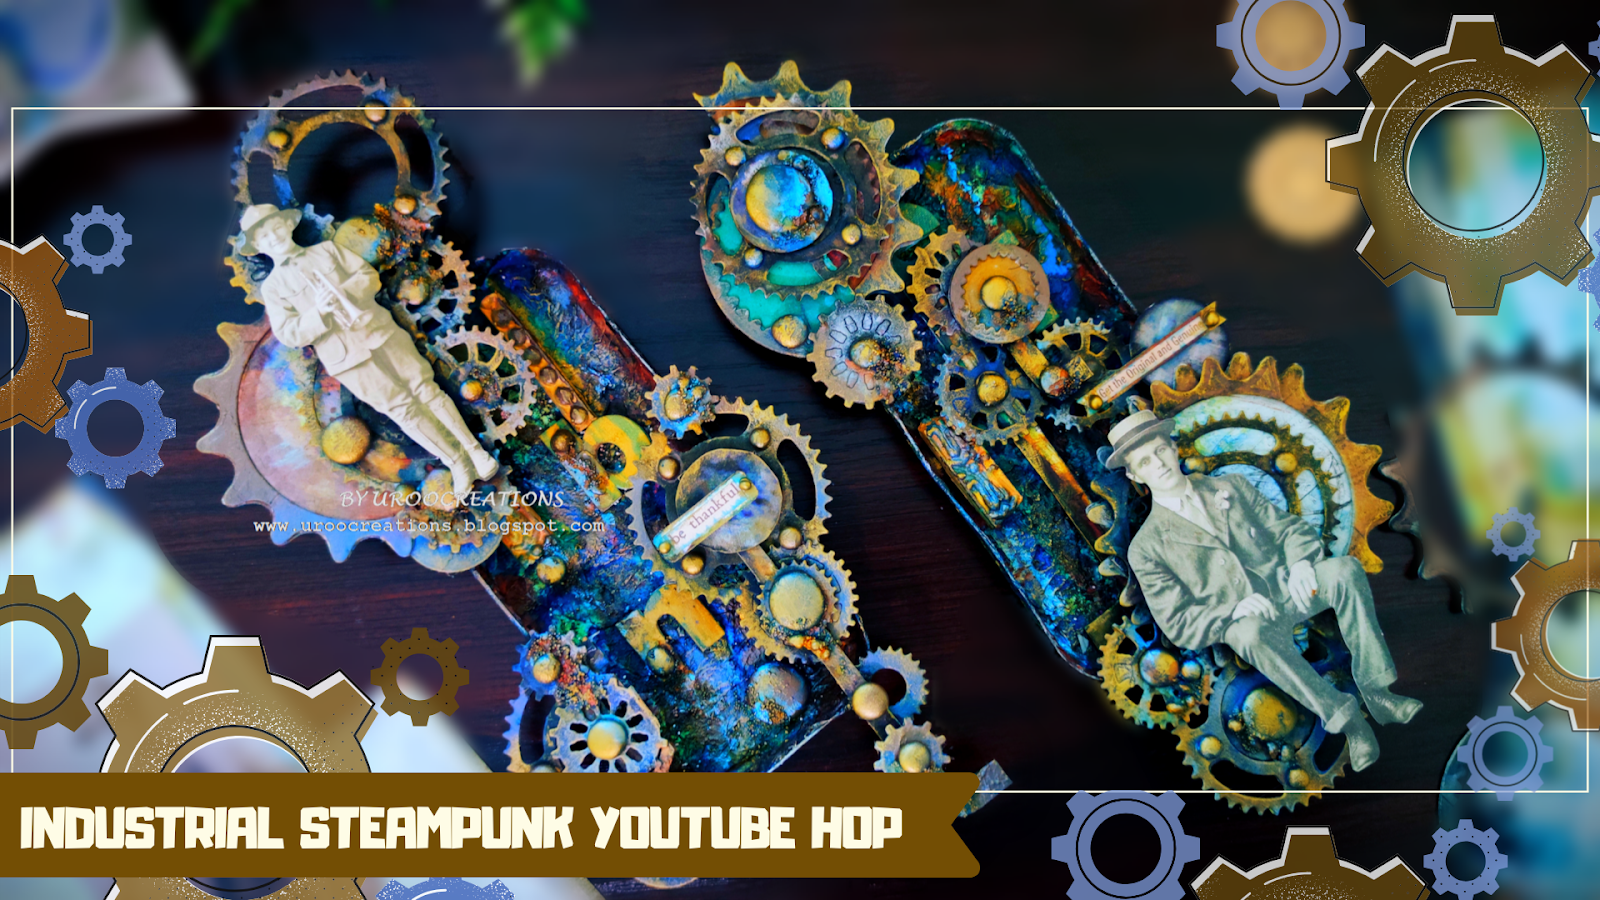 MIXED MEDIA WALL ART - STEAMPUNK